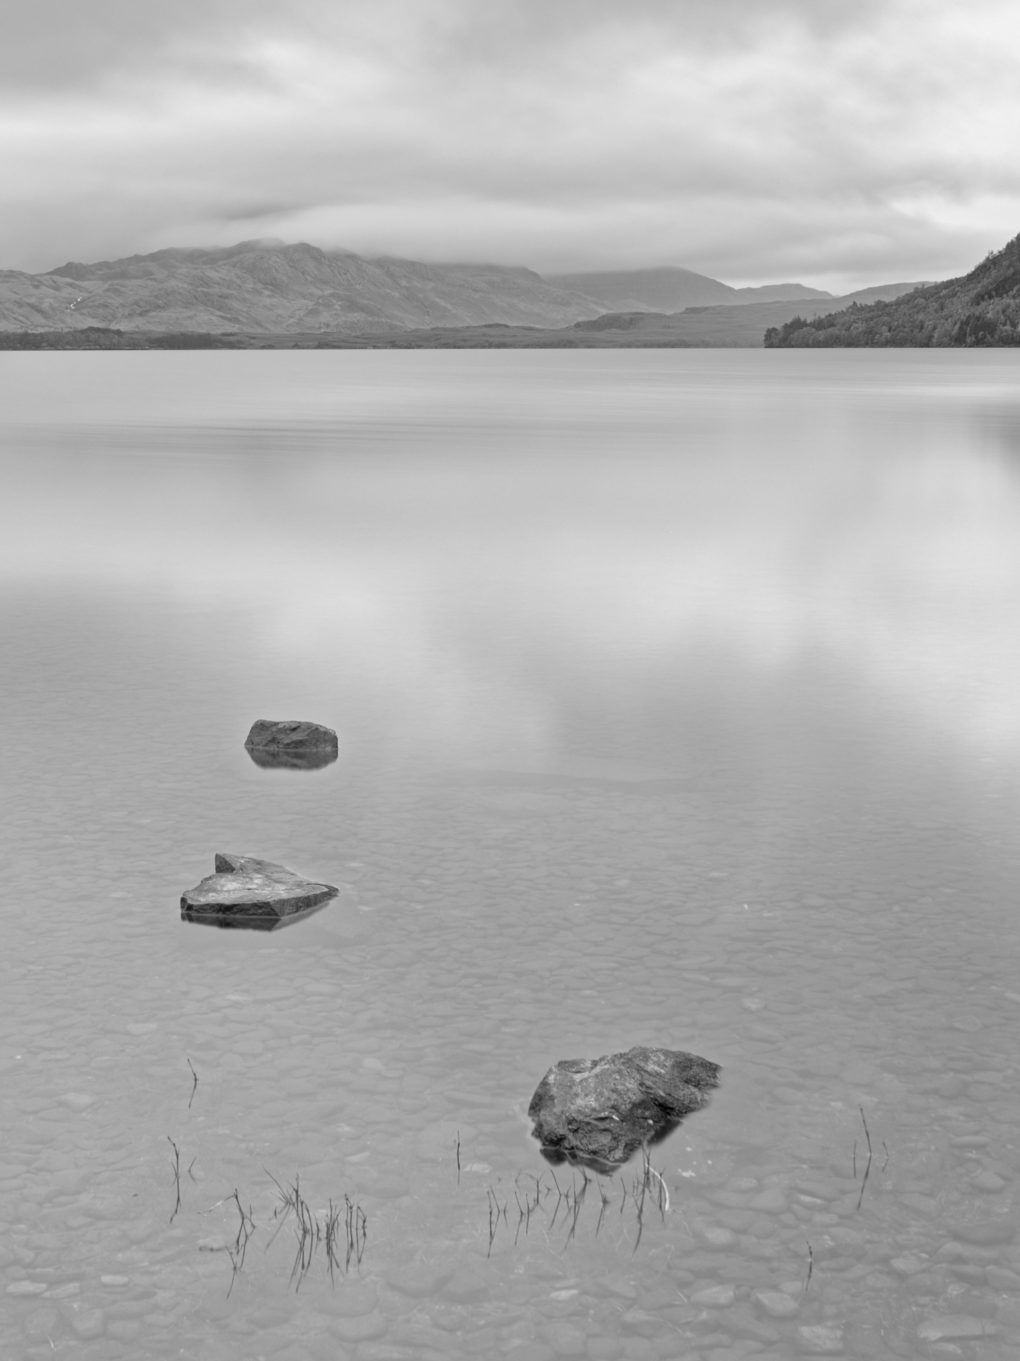 On the shore of Loch Maree at Slattadale, looking toward Slioch in the distance.As I was here, there was a fellow cooking breakfast a few yards along the little beach - the smell of fried bacon rashers wafted past on the breeze...